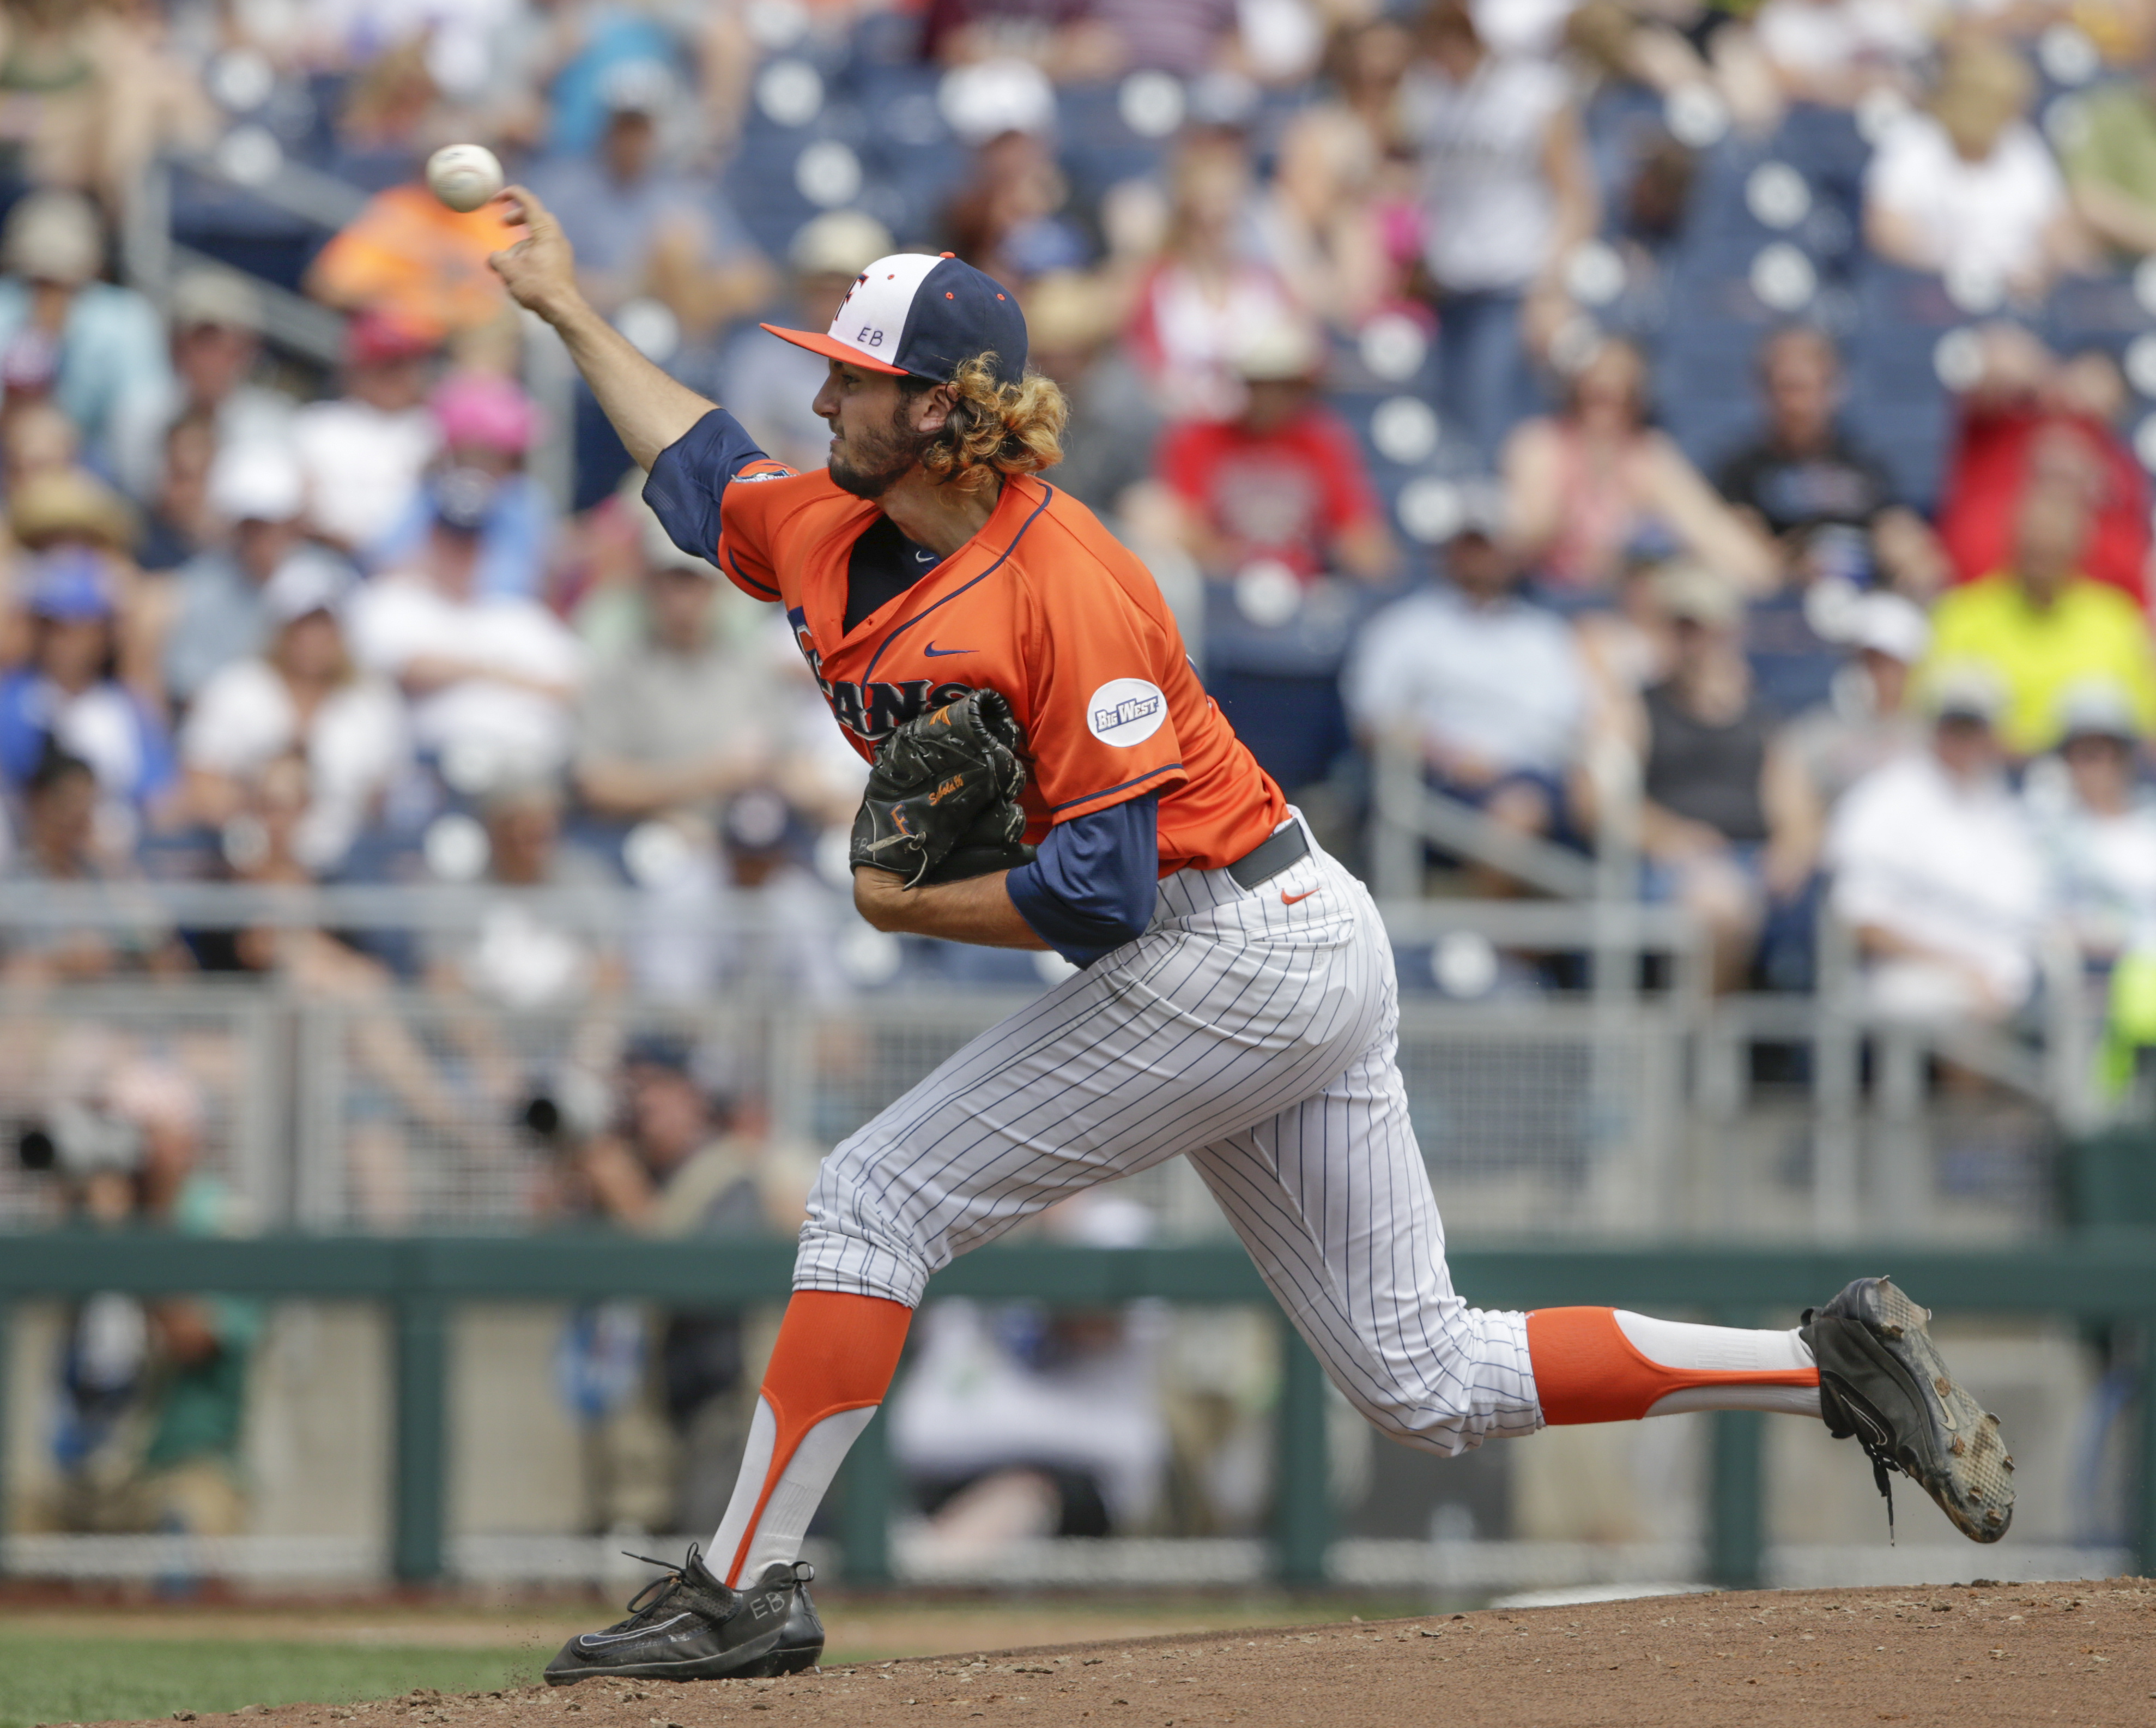 Cal State Fullerton pitcher Connor Seabold (26) throws against Oregon State in the first inning of an NCAA mens College World Series baseball game in Omaha, Neb., Saturday, June 17, 2017. (AP Photo/Nati Harnik)